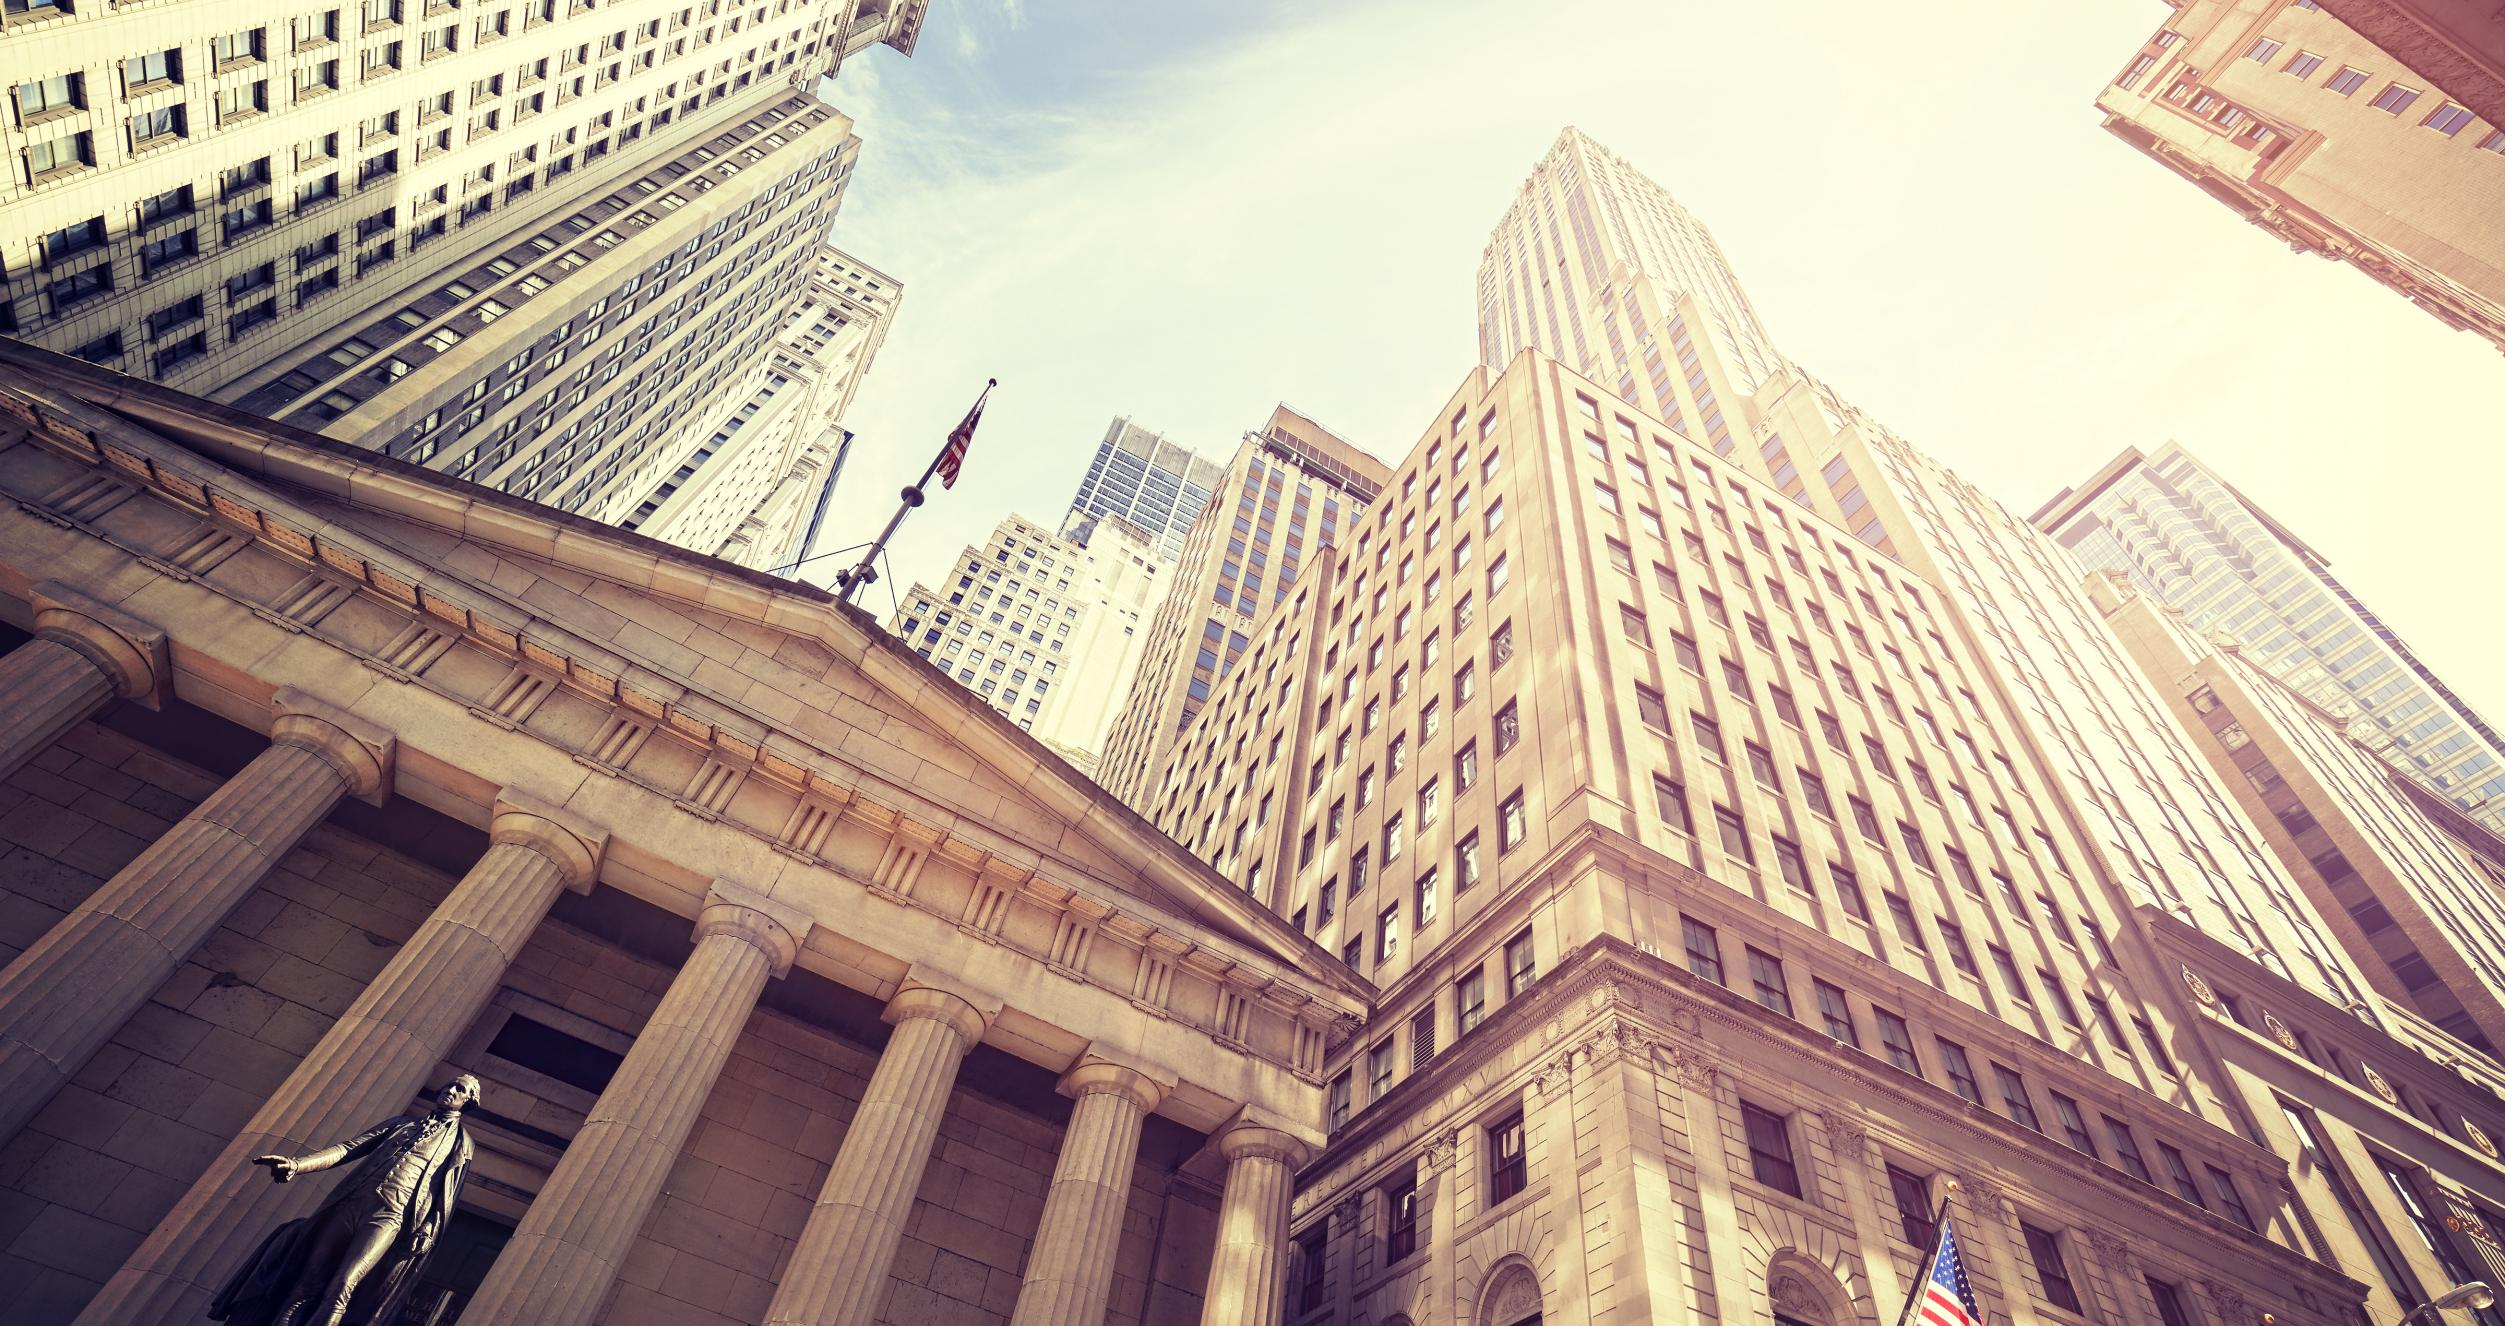 A view of the New York Stock Exchange